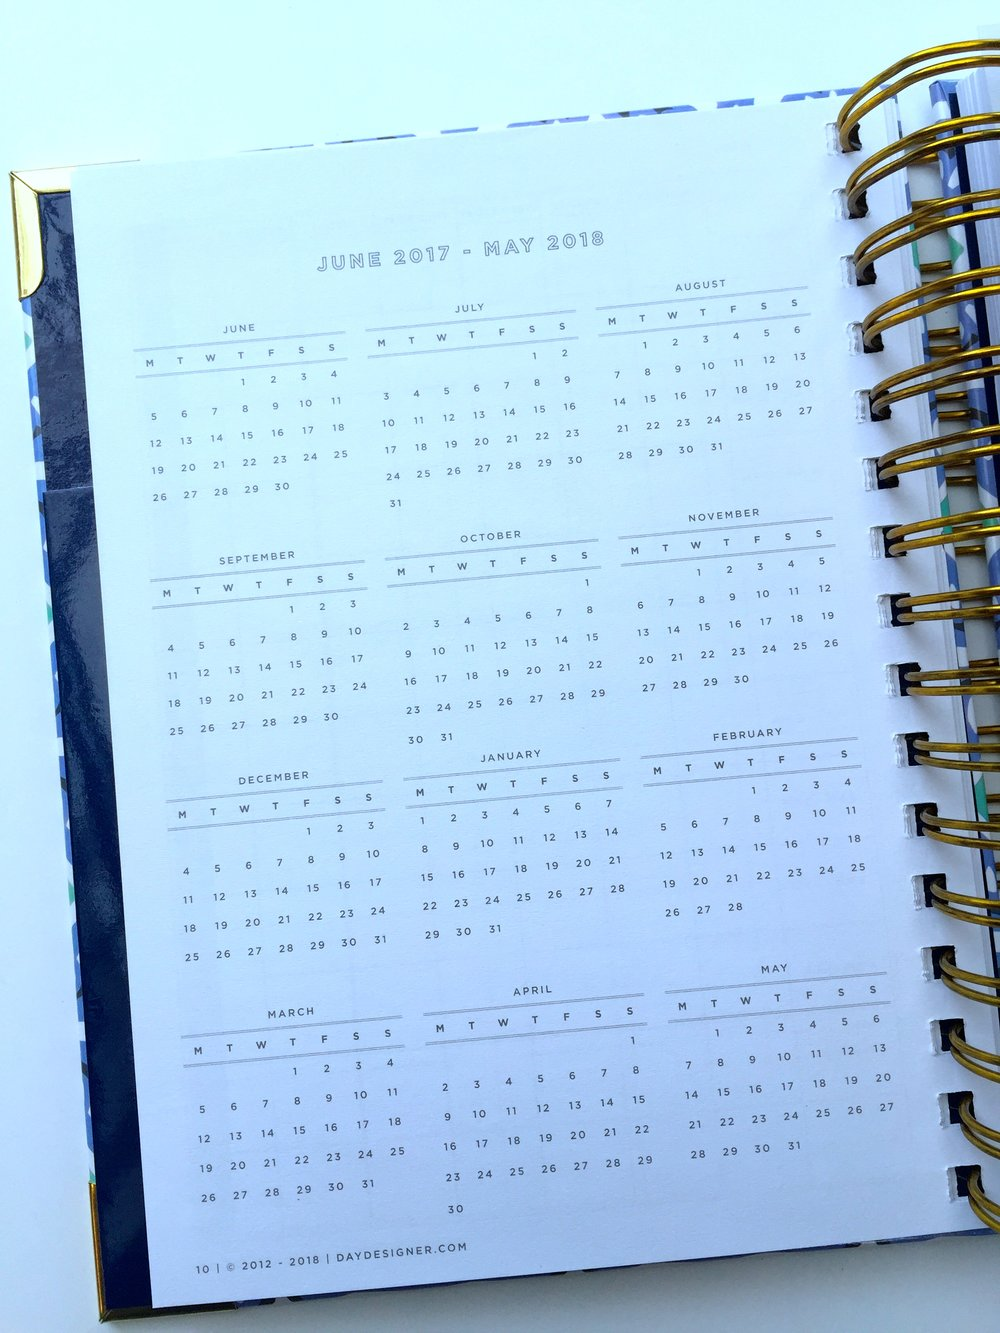 The Mini Yearly Calendar